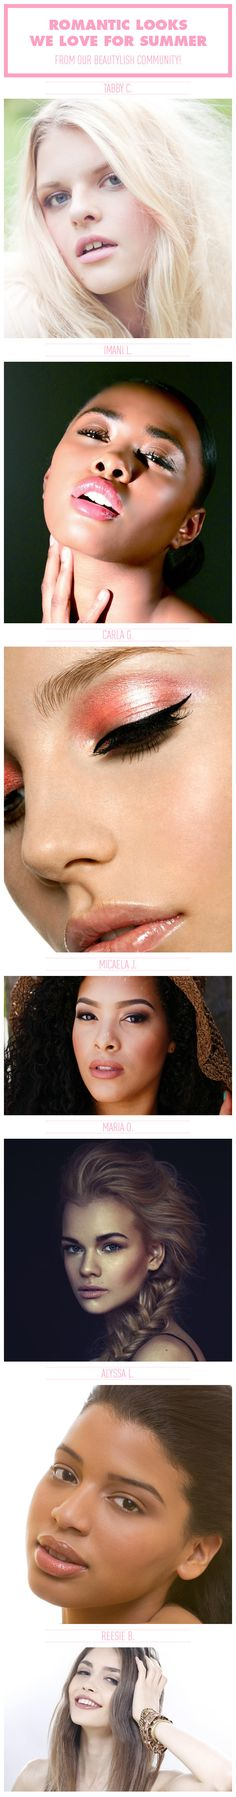 Sometimes a softer, more simple look is just the ticket. Check out our favorite romantic looks from the Beautylish community. Diy Beauty Makeup, Makeup Tips, Hair Makeup, Hair Beauty, Beauty Tutorials, Beauty Hacks, Cute Hairstyles For Summer, High Fashion Makeup, Romantic Look